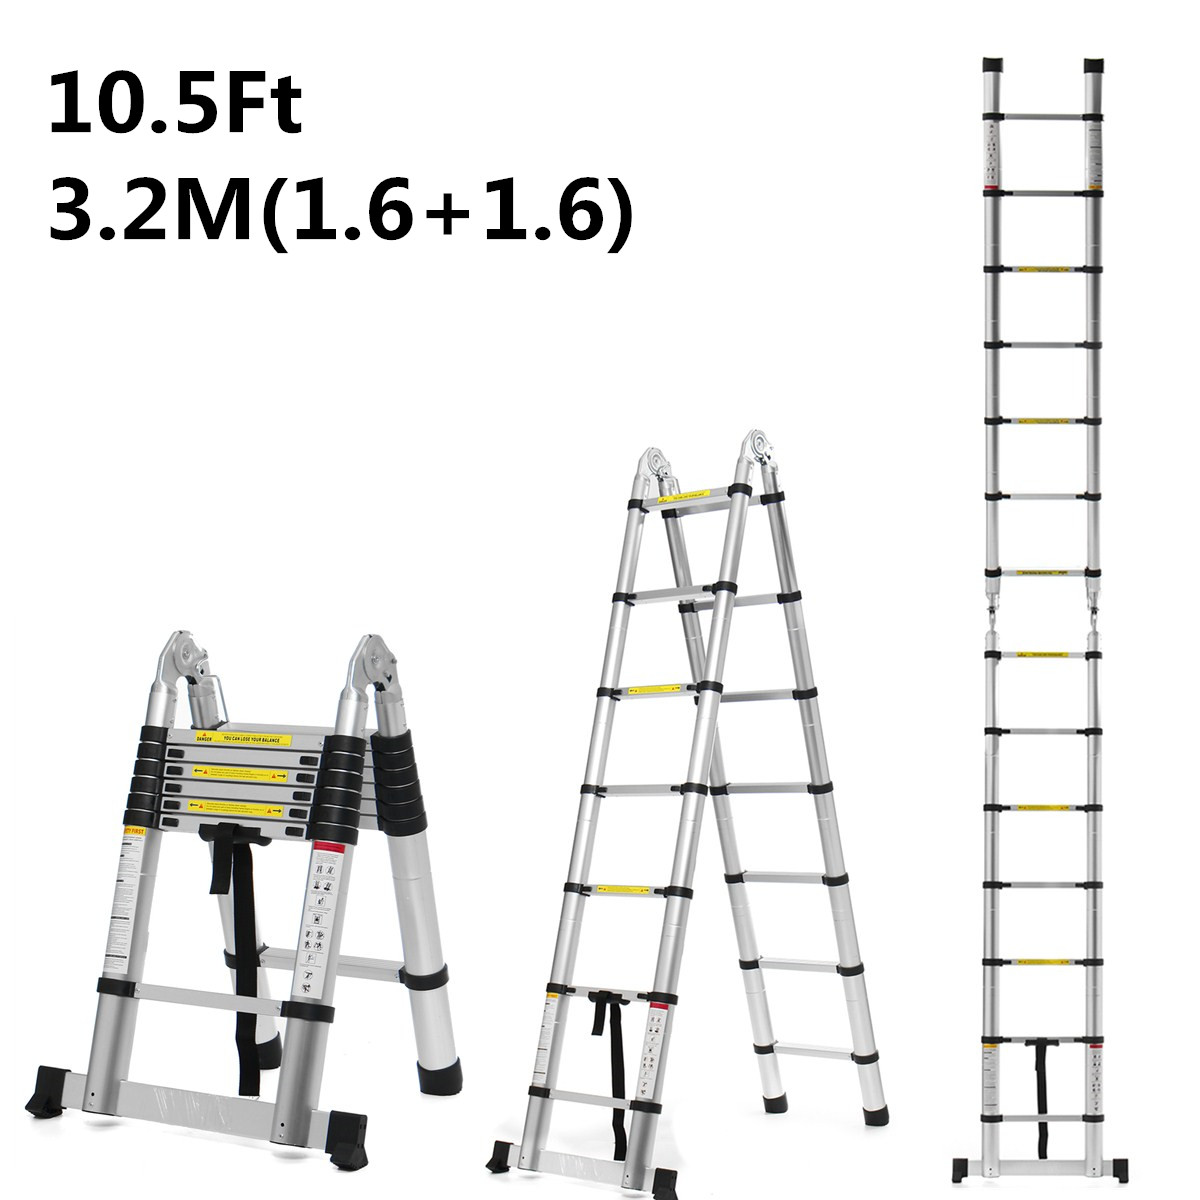 3.2m 10.5Ft Folding Ladder Aluminium Telescopic Ladders Dual-Use Herringbone Ladder Multifunctional Single Extension Tools